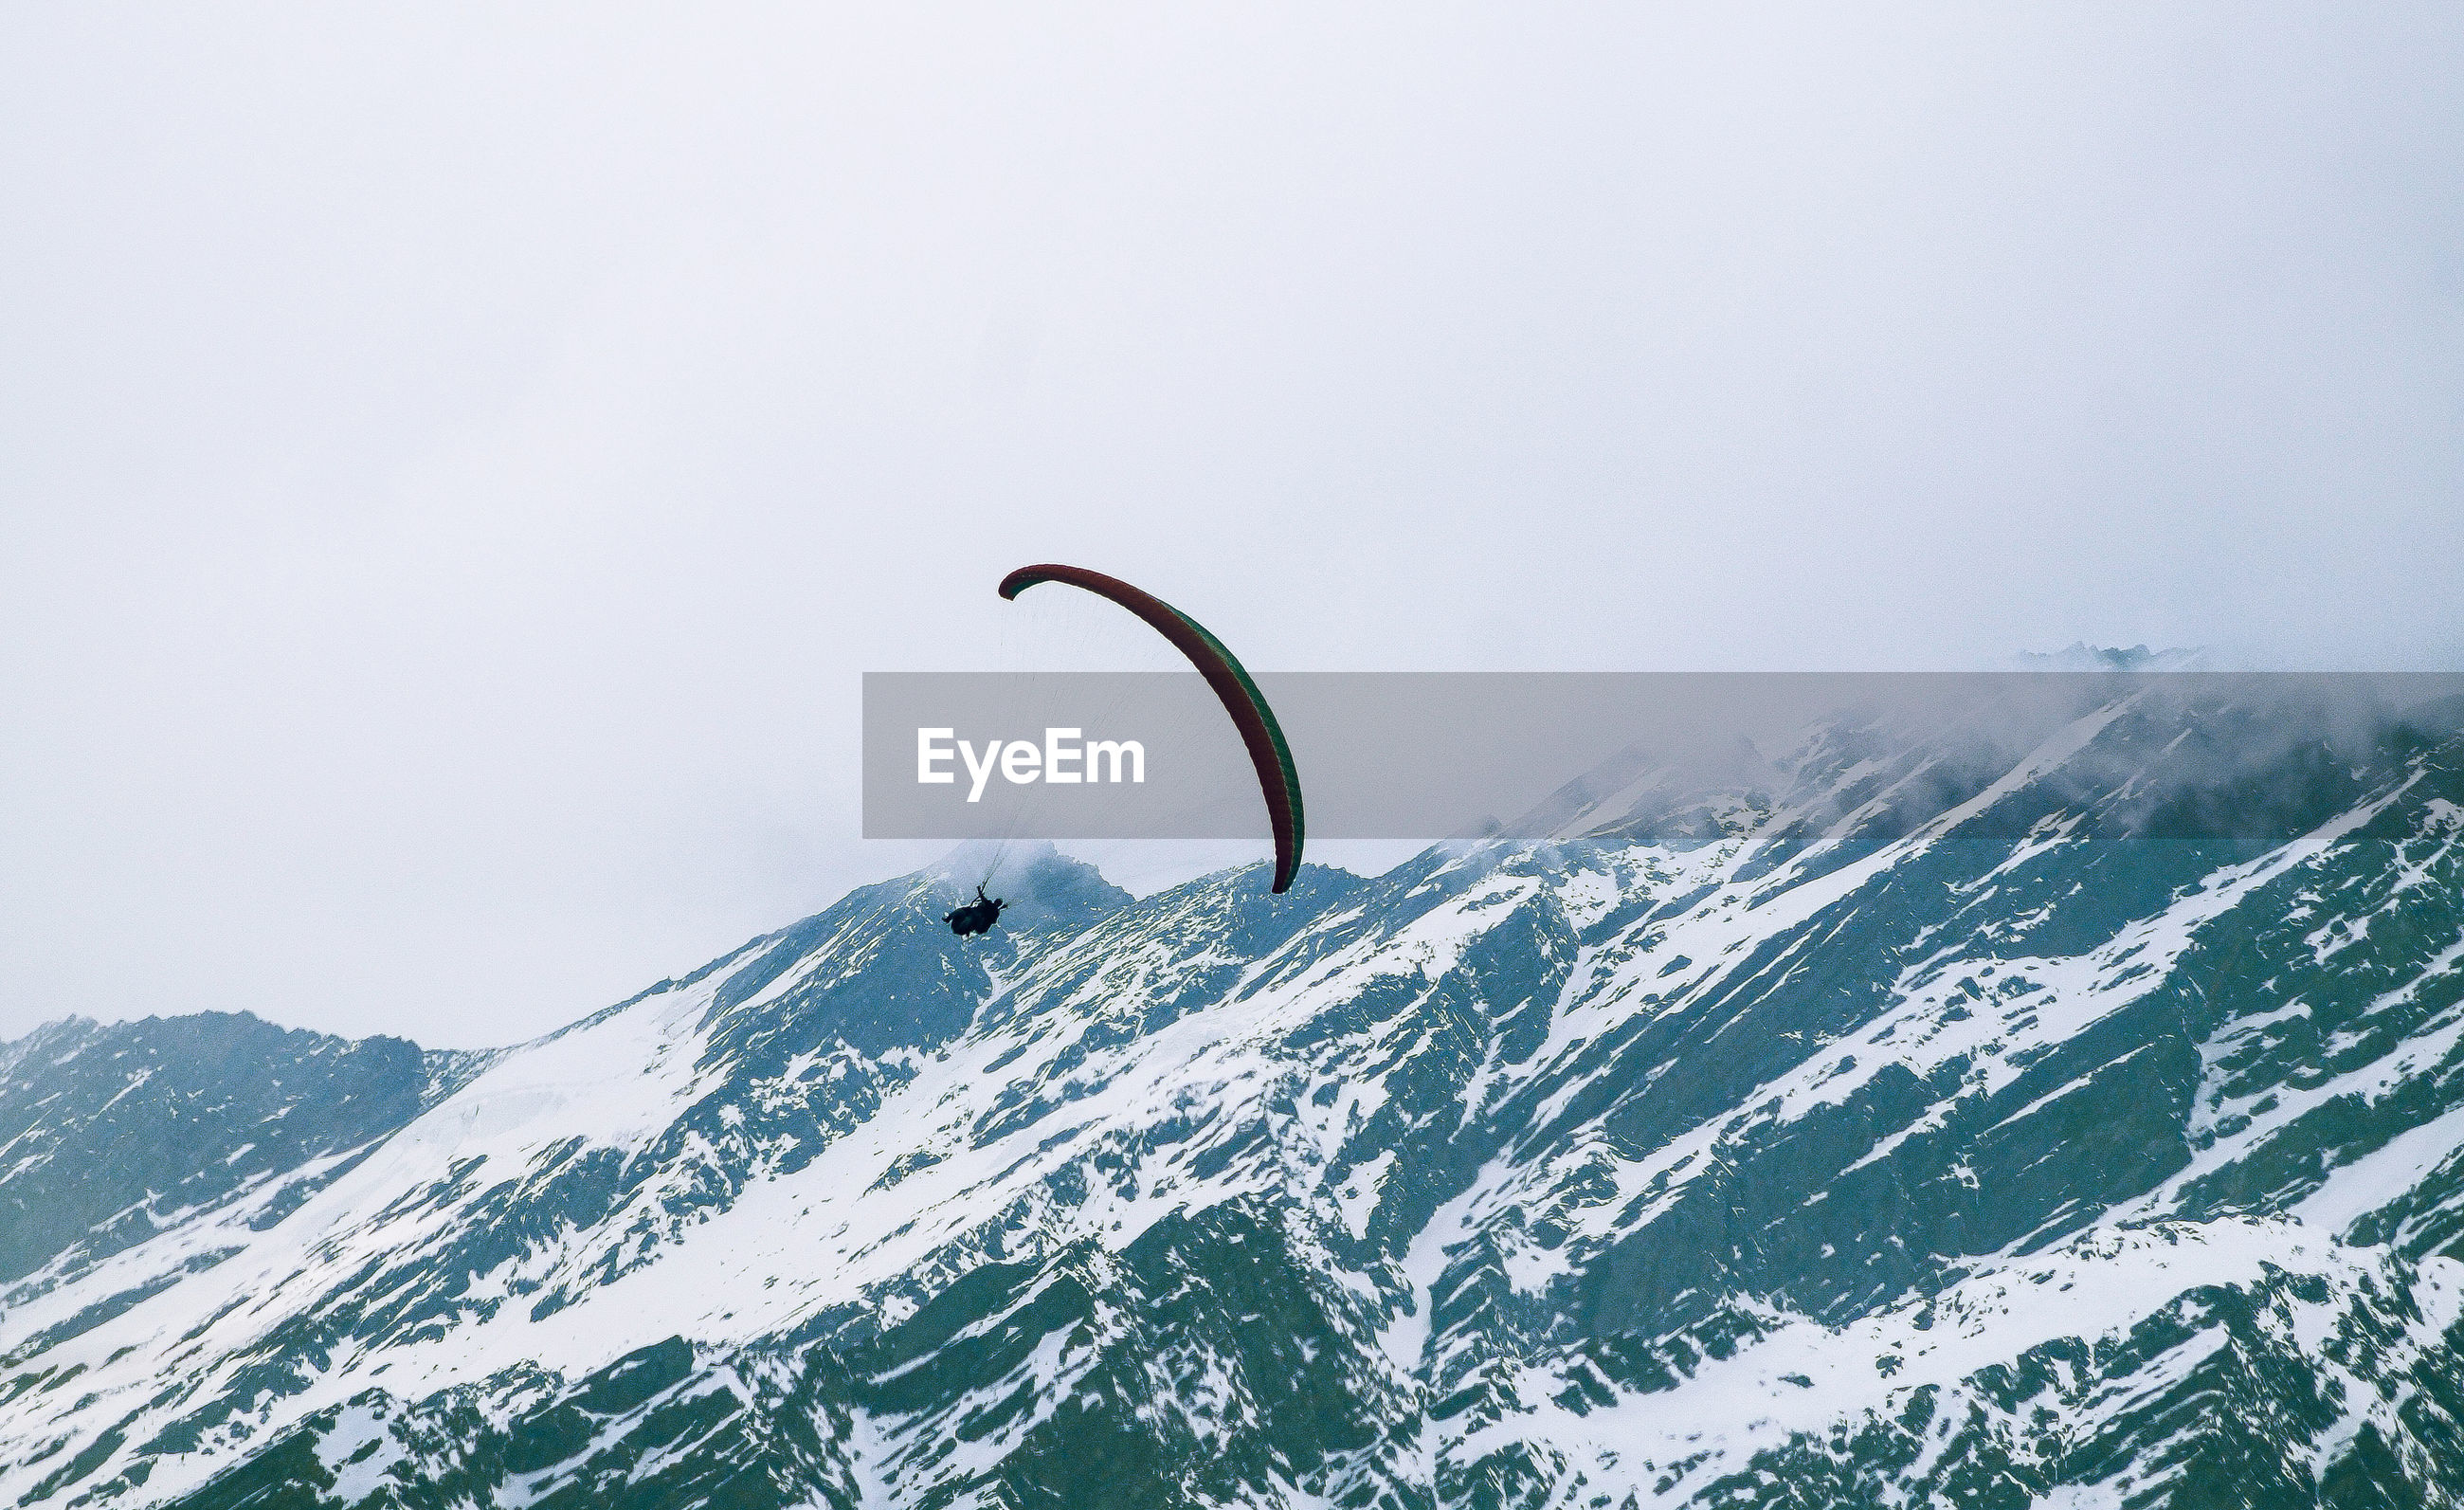 Person paragliding over of snowcapped mountains against sky